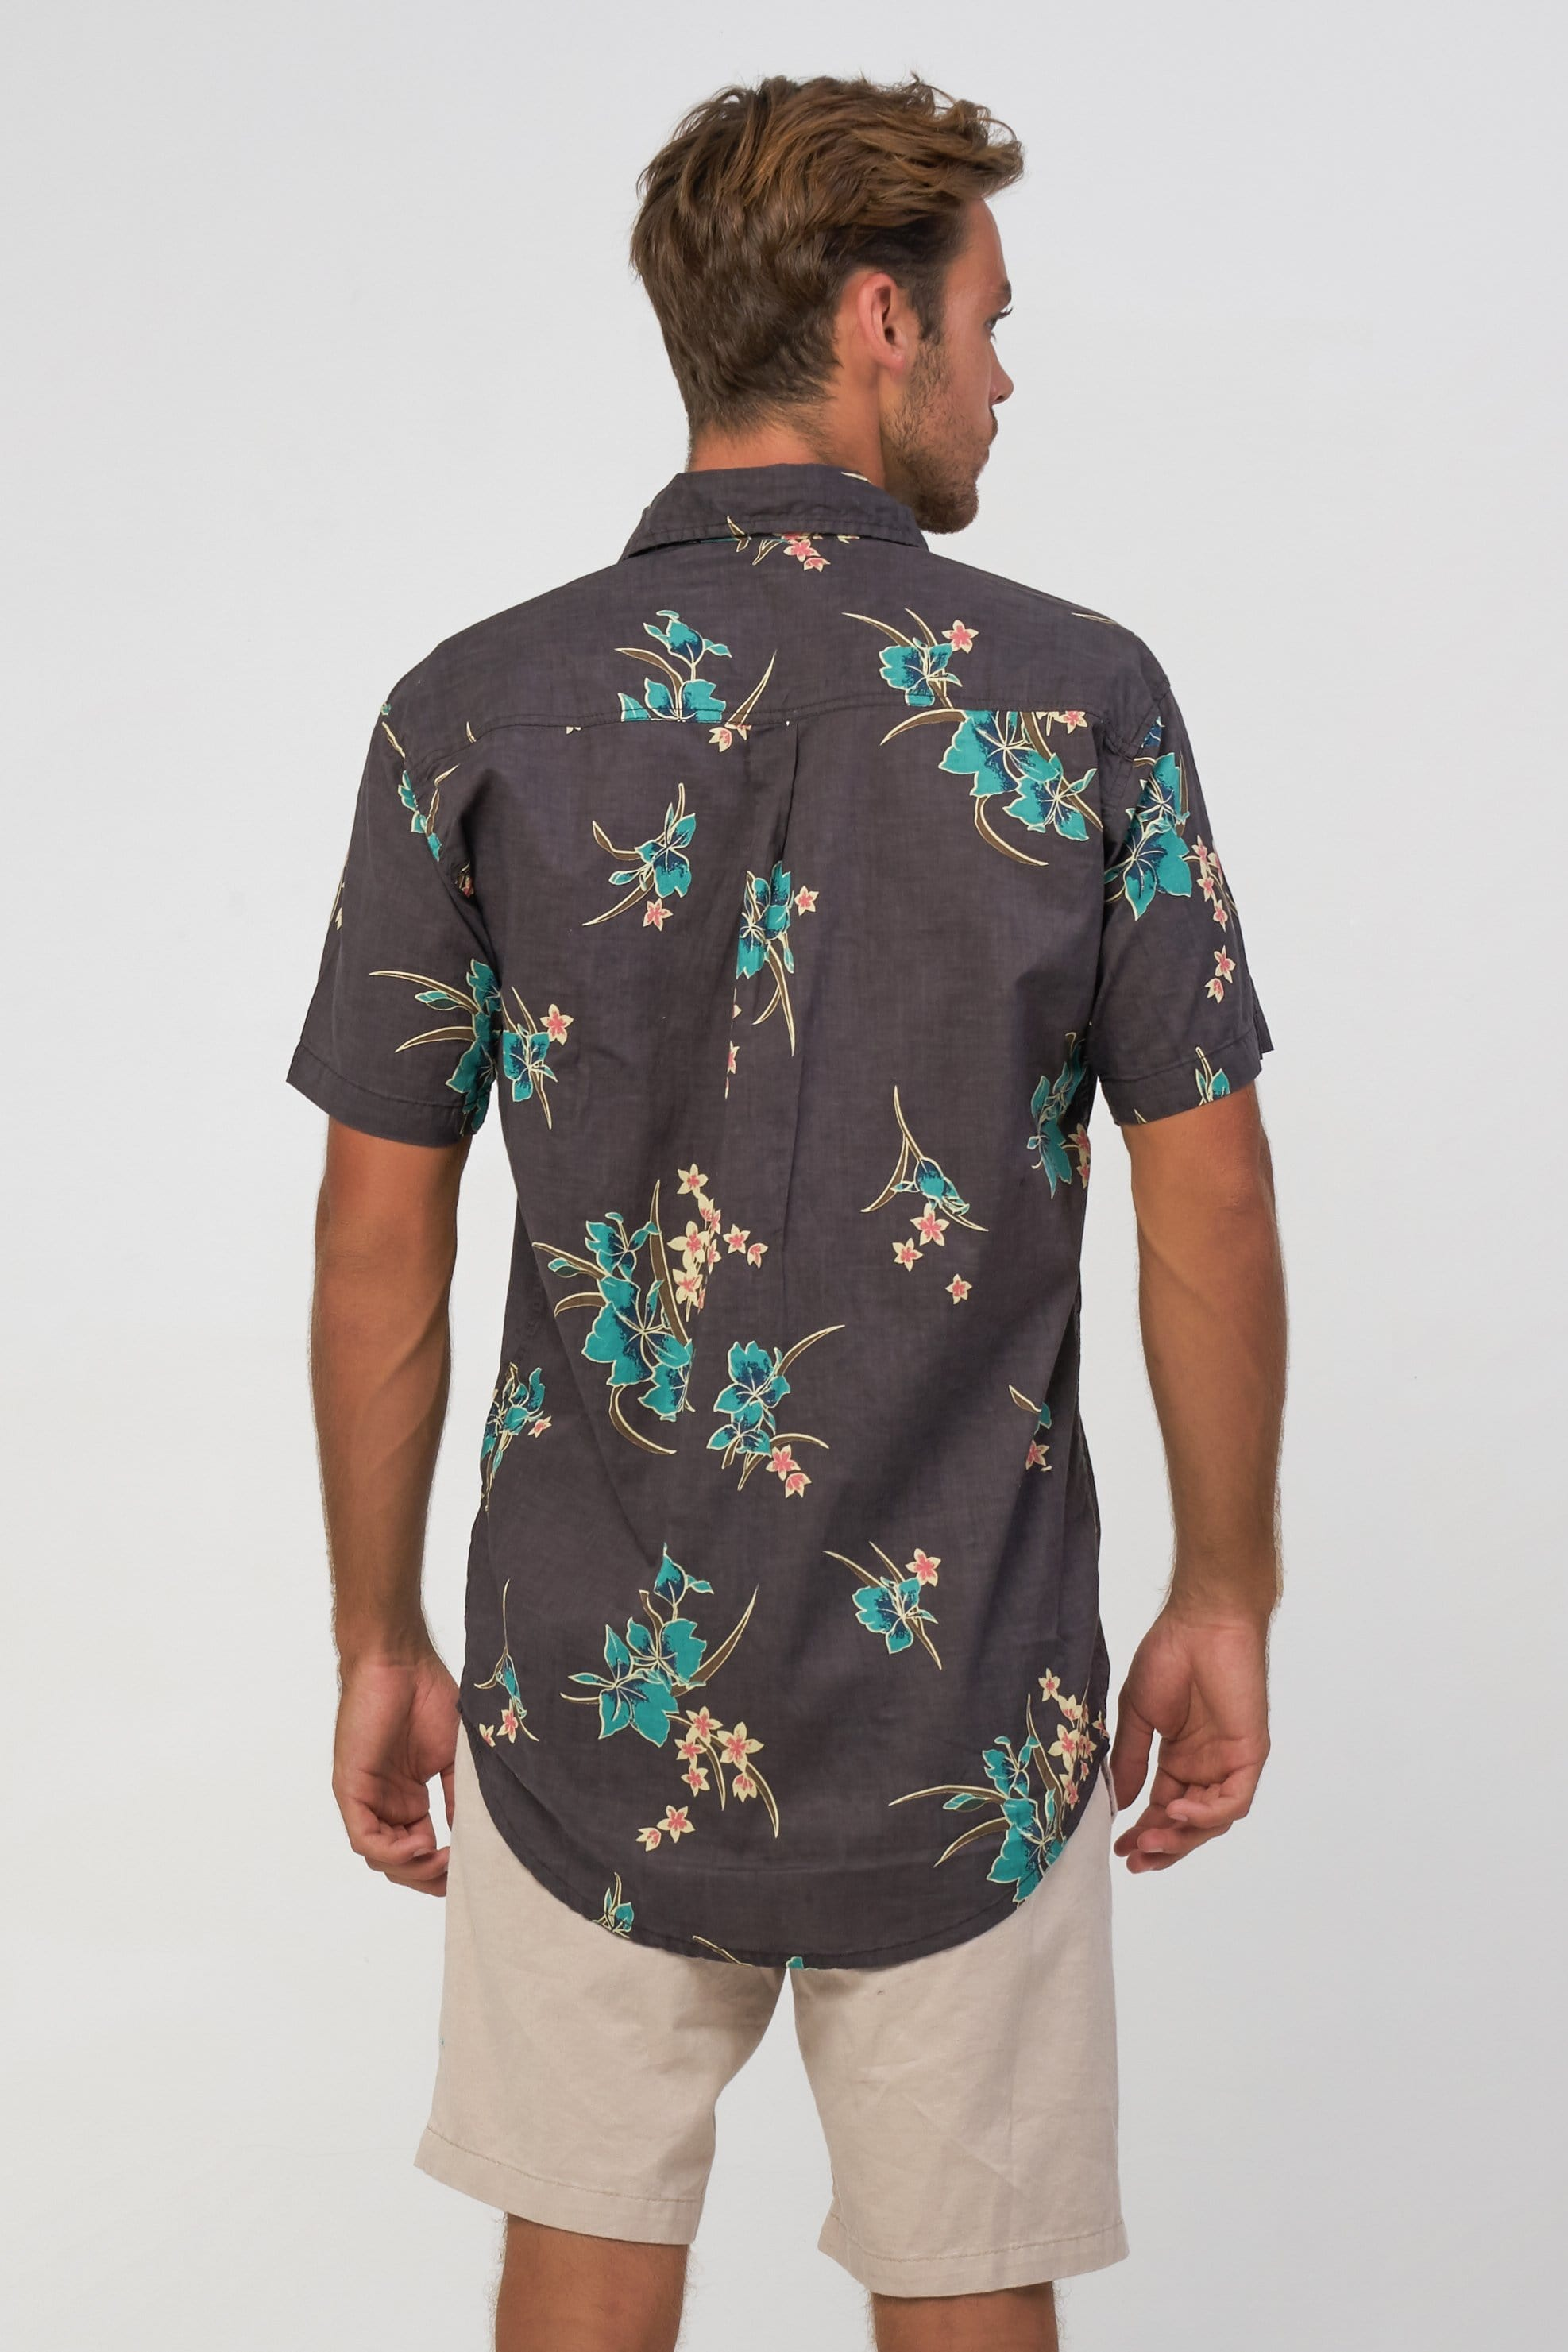 Ourchid Shirt - Man Shirt - LOST IN PARADISE